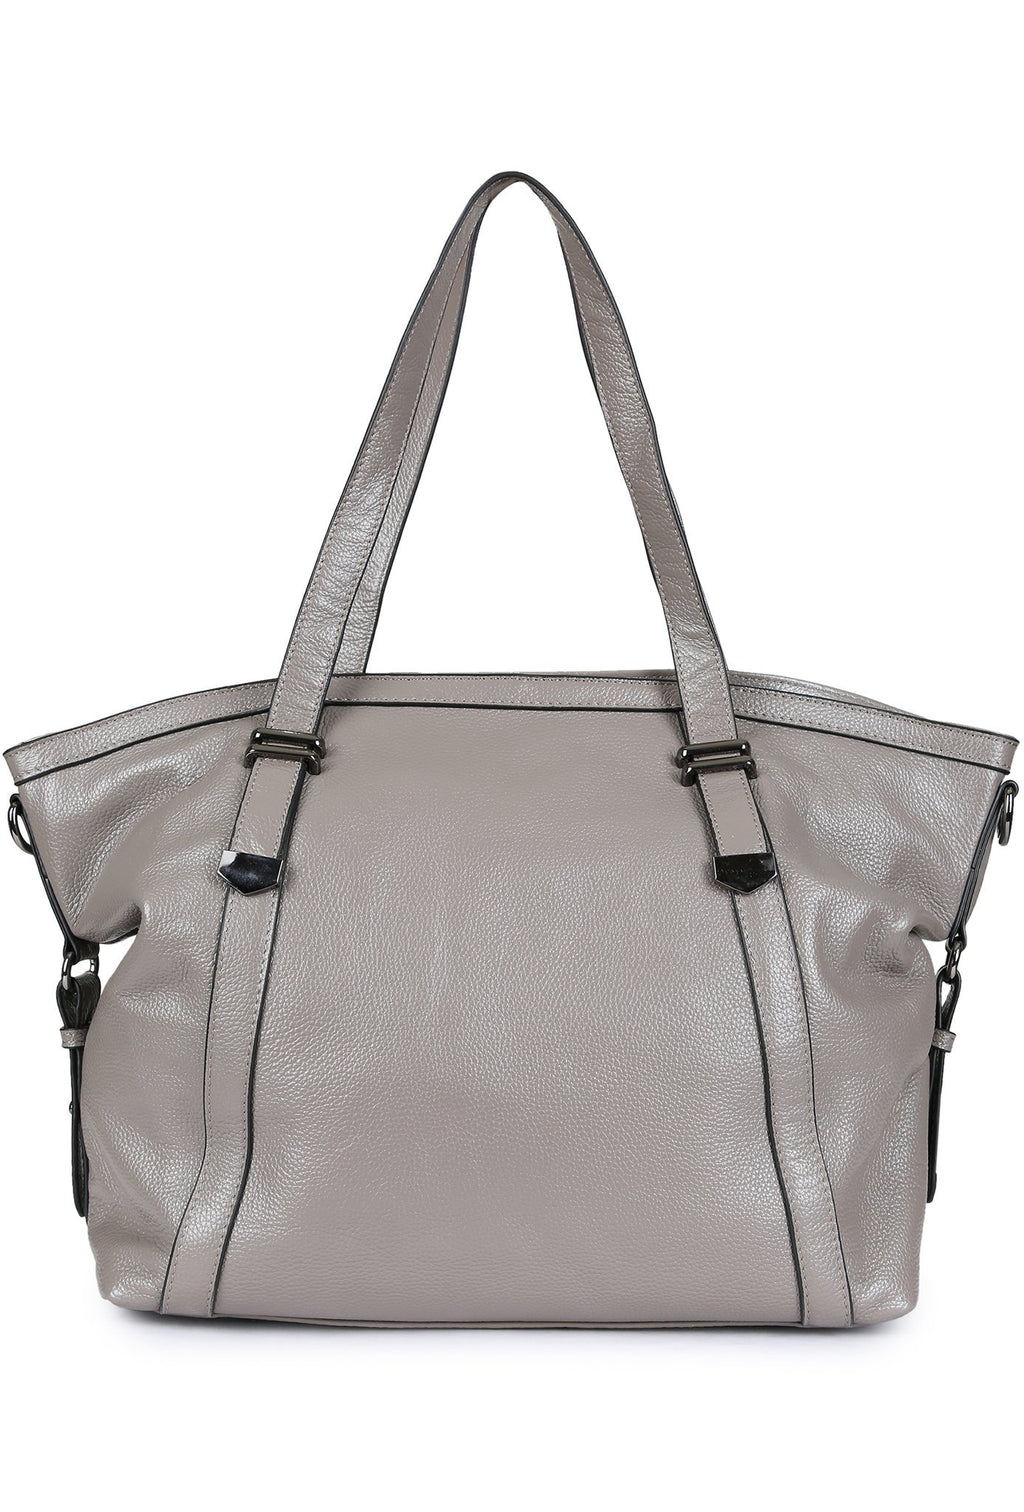 VIKAS - Pebbled Leather Carryall - Grey